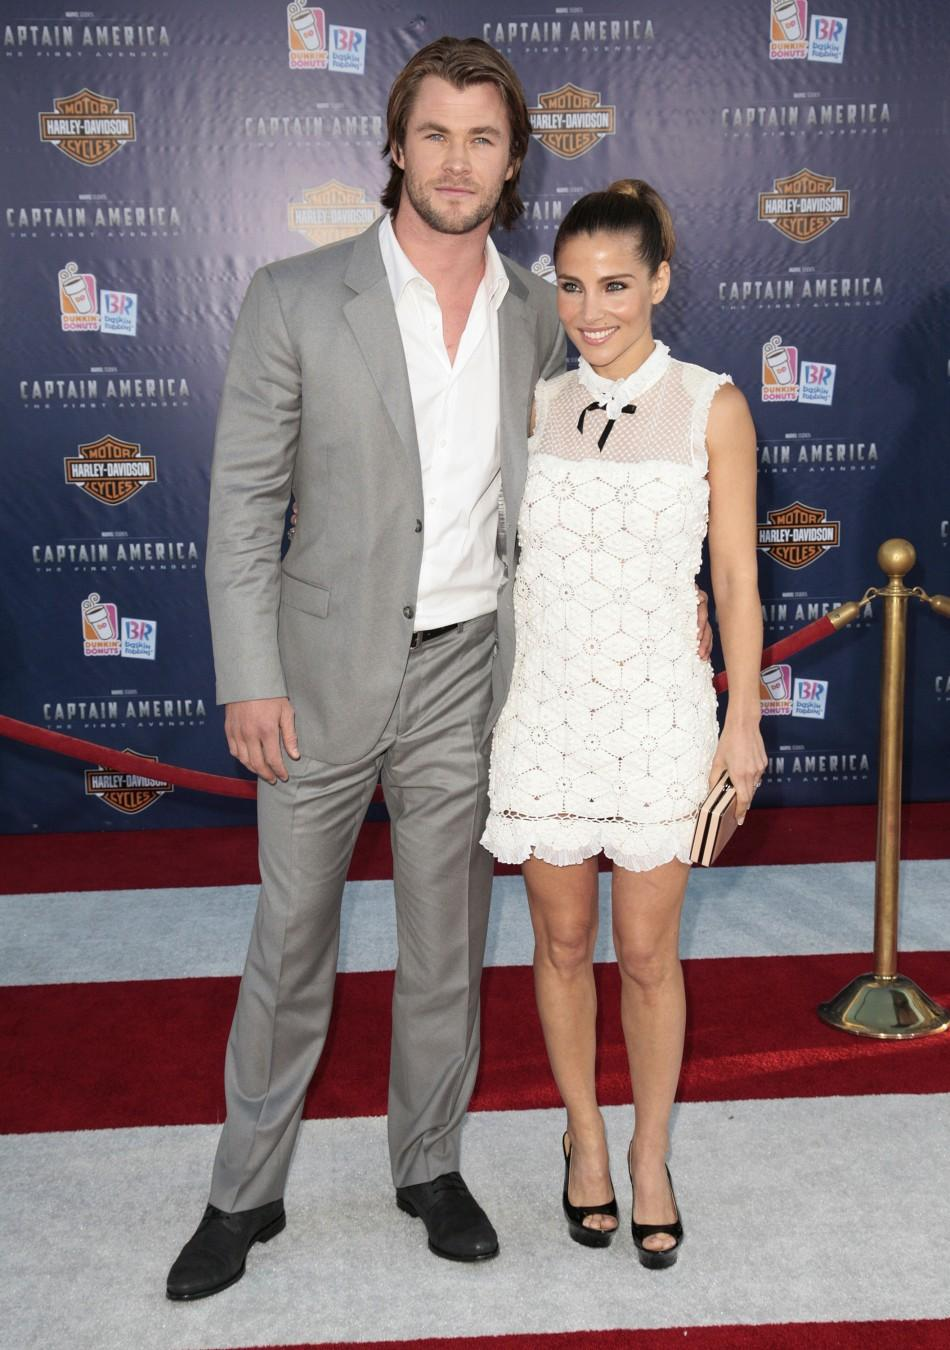 """Actor Hemsworth and his wife pose as they arrive at the """"Captain America: The First Avenger"""" film premiere in Hollywood"""